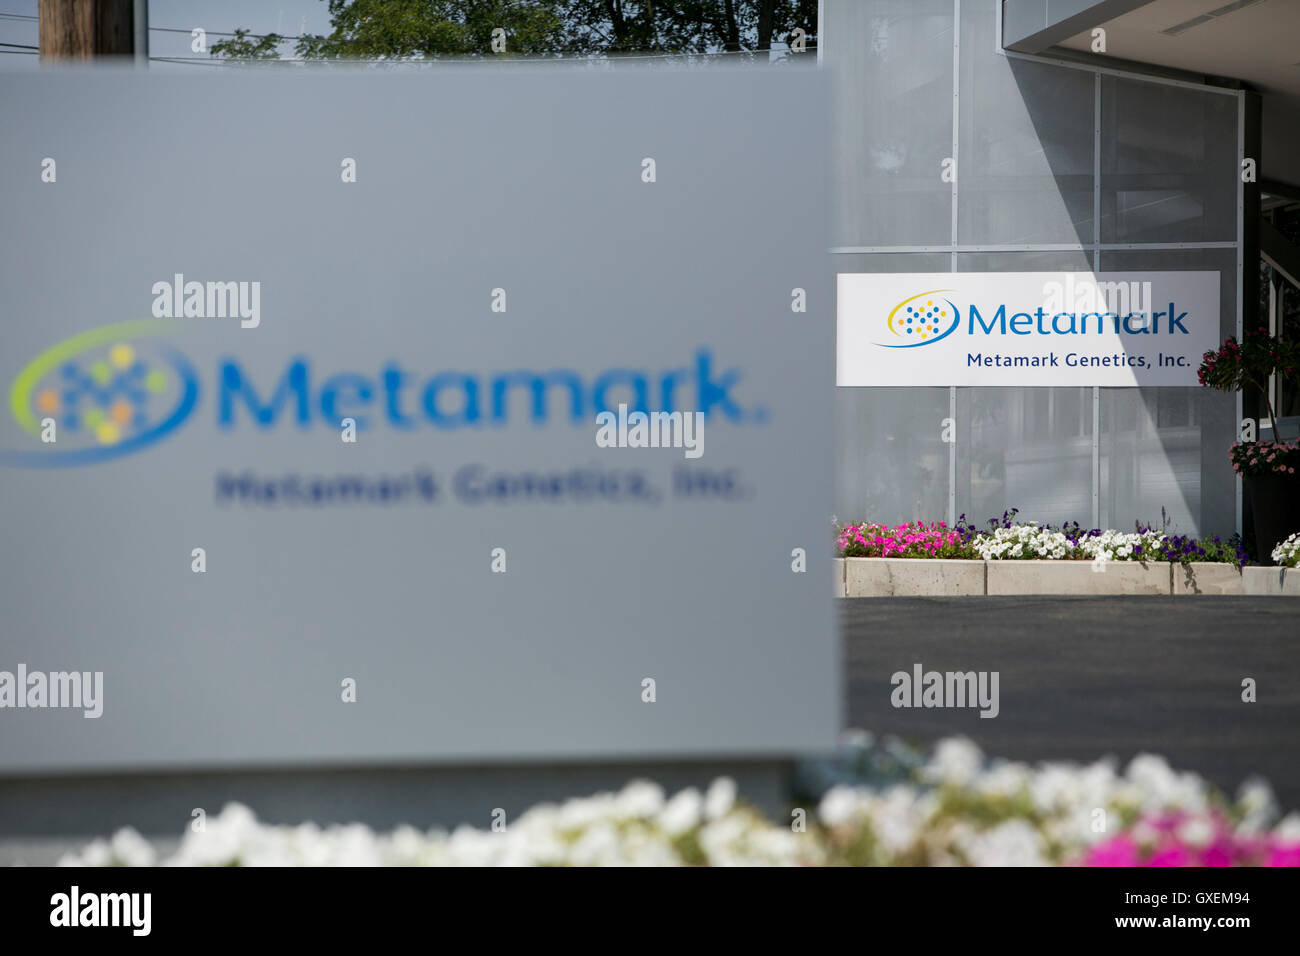 A logo sign outside of a facility occupied by Metamark Genetics in Waltham, Massachusetts on August 13, 2016. - Stock Image